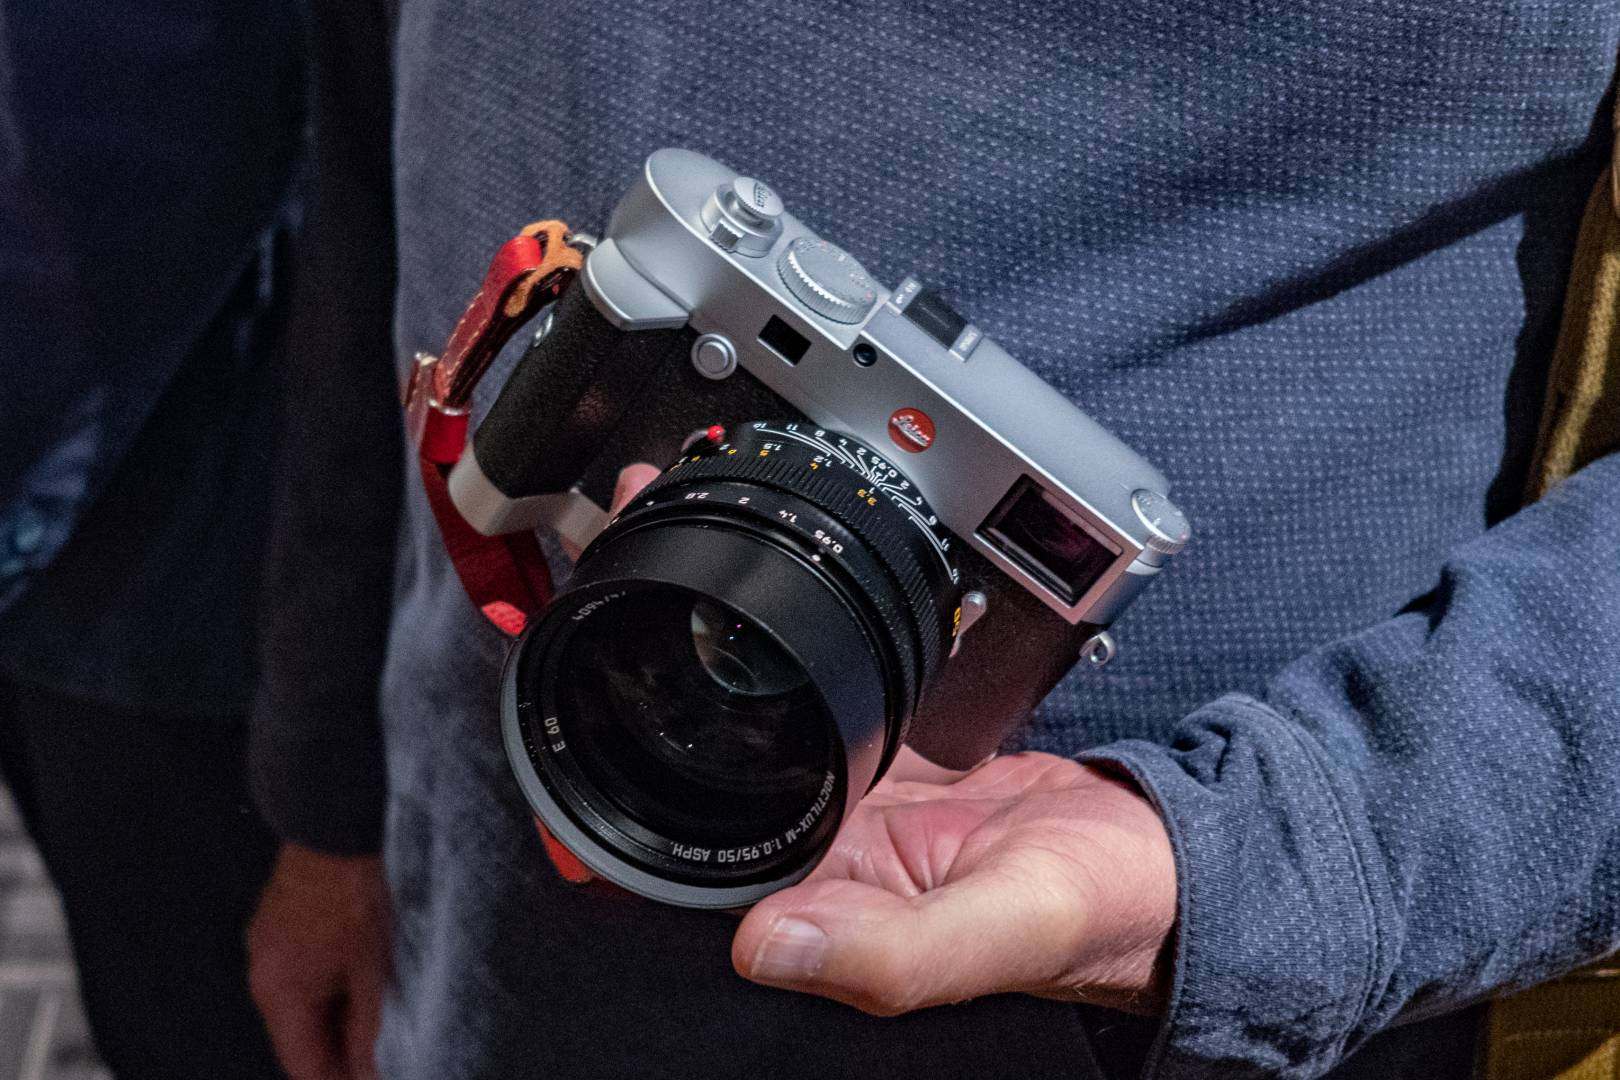 The M10 could just well be the apogee for Leica's digital rangefinder format. It matches the M7 is size and feel and the new control layout and haptics are generally acclaimed to be the best yet. Future developments could be restricted to internals. Faster processors a given and there will be denser sensors. But compatibility with the full range of M lenses puts a ceiling on resolution. Image of Tom Lane's M10 and 50mm Noctilux by Mike Evans, taken with the Leica CL and 18mm f/2.8